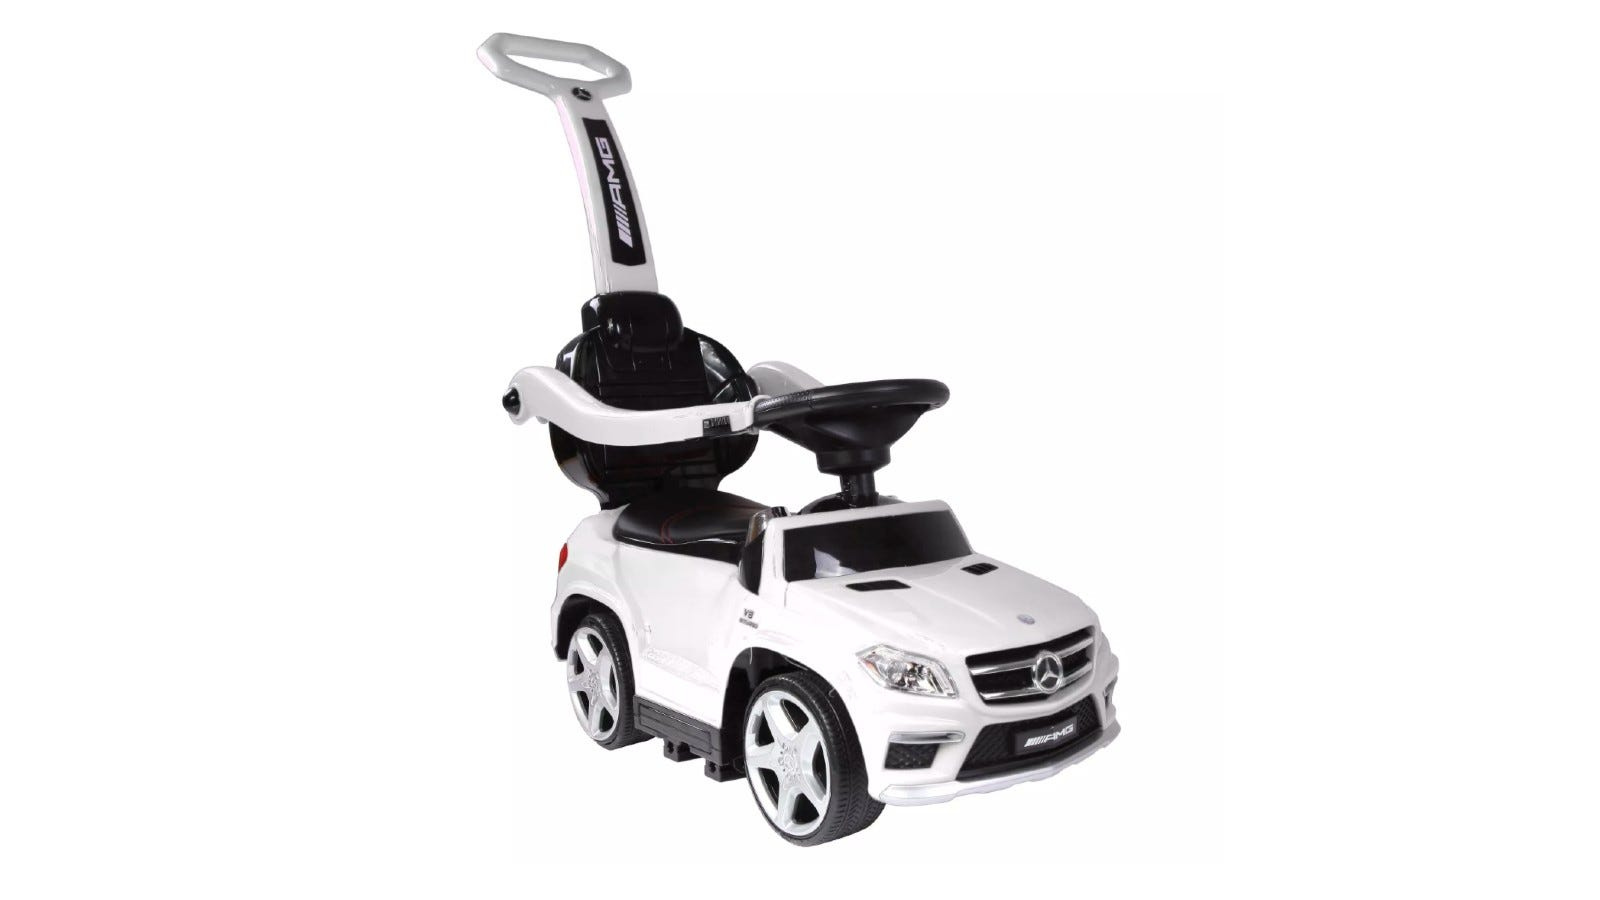 A white Mercedes push car with black accents.